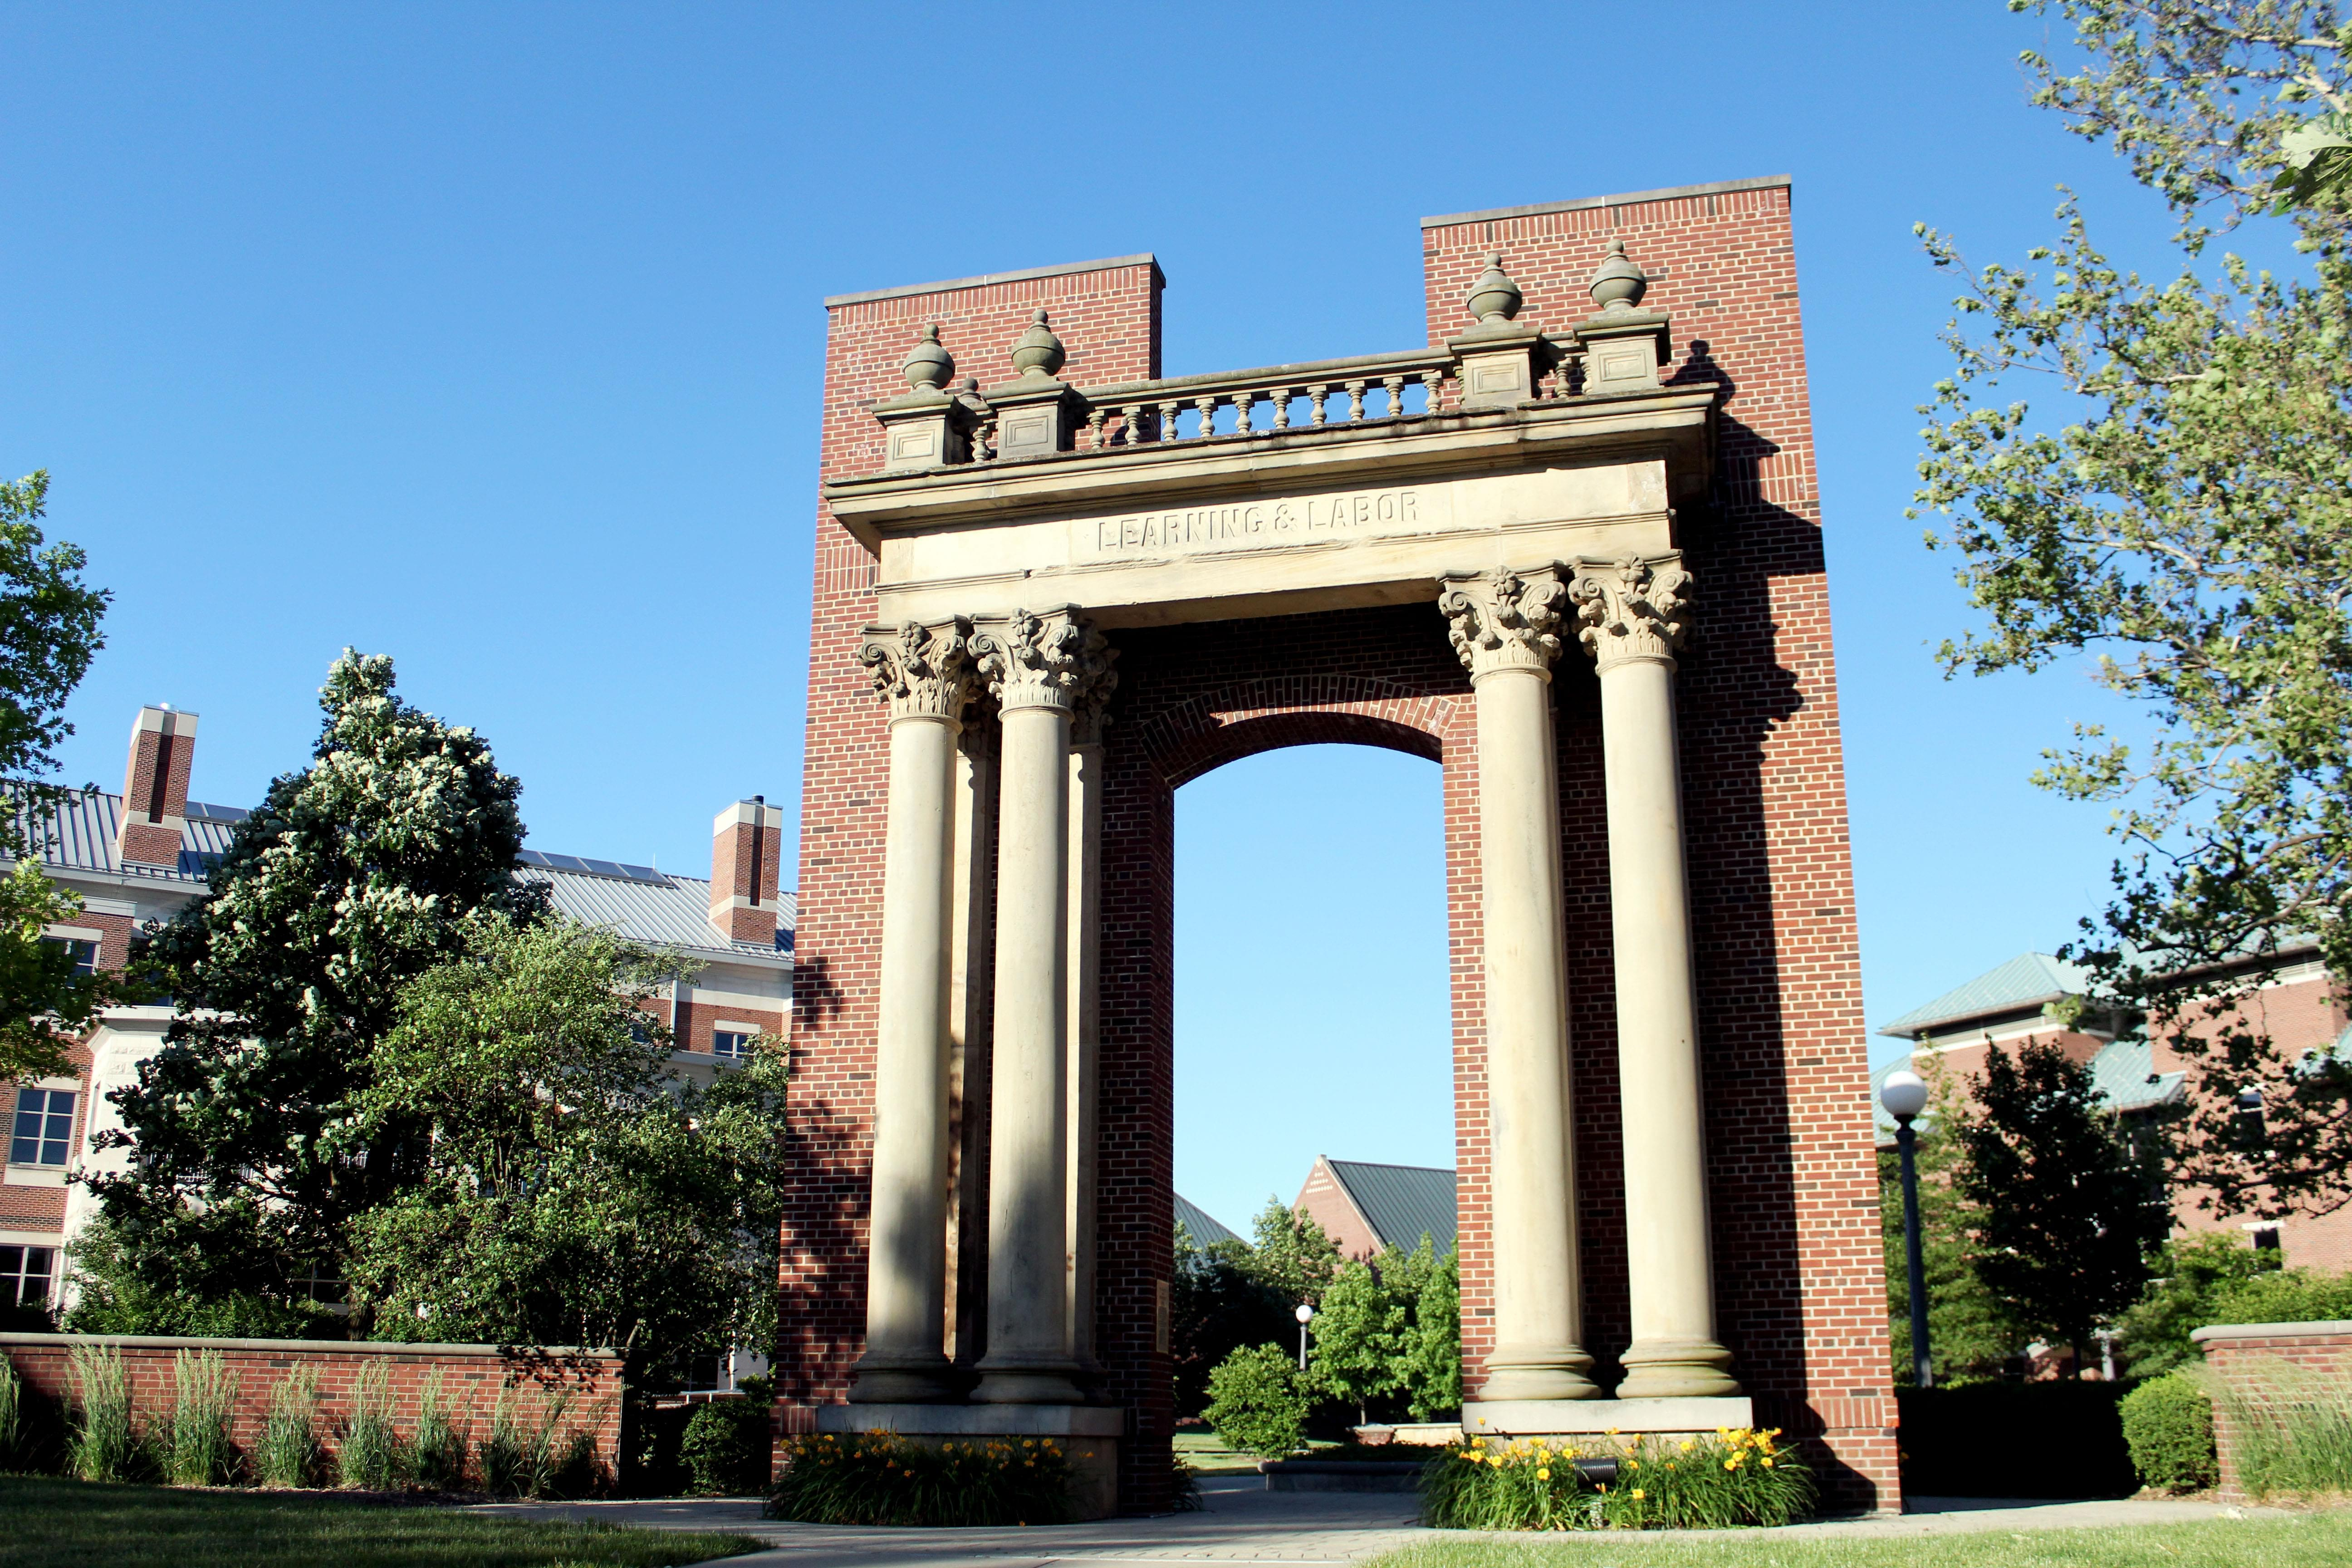 The Hallene Gateway on the University of Illinois Urbana campus.